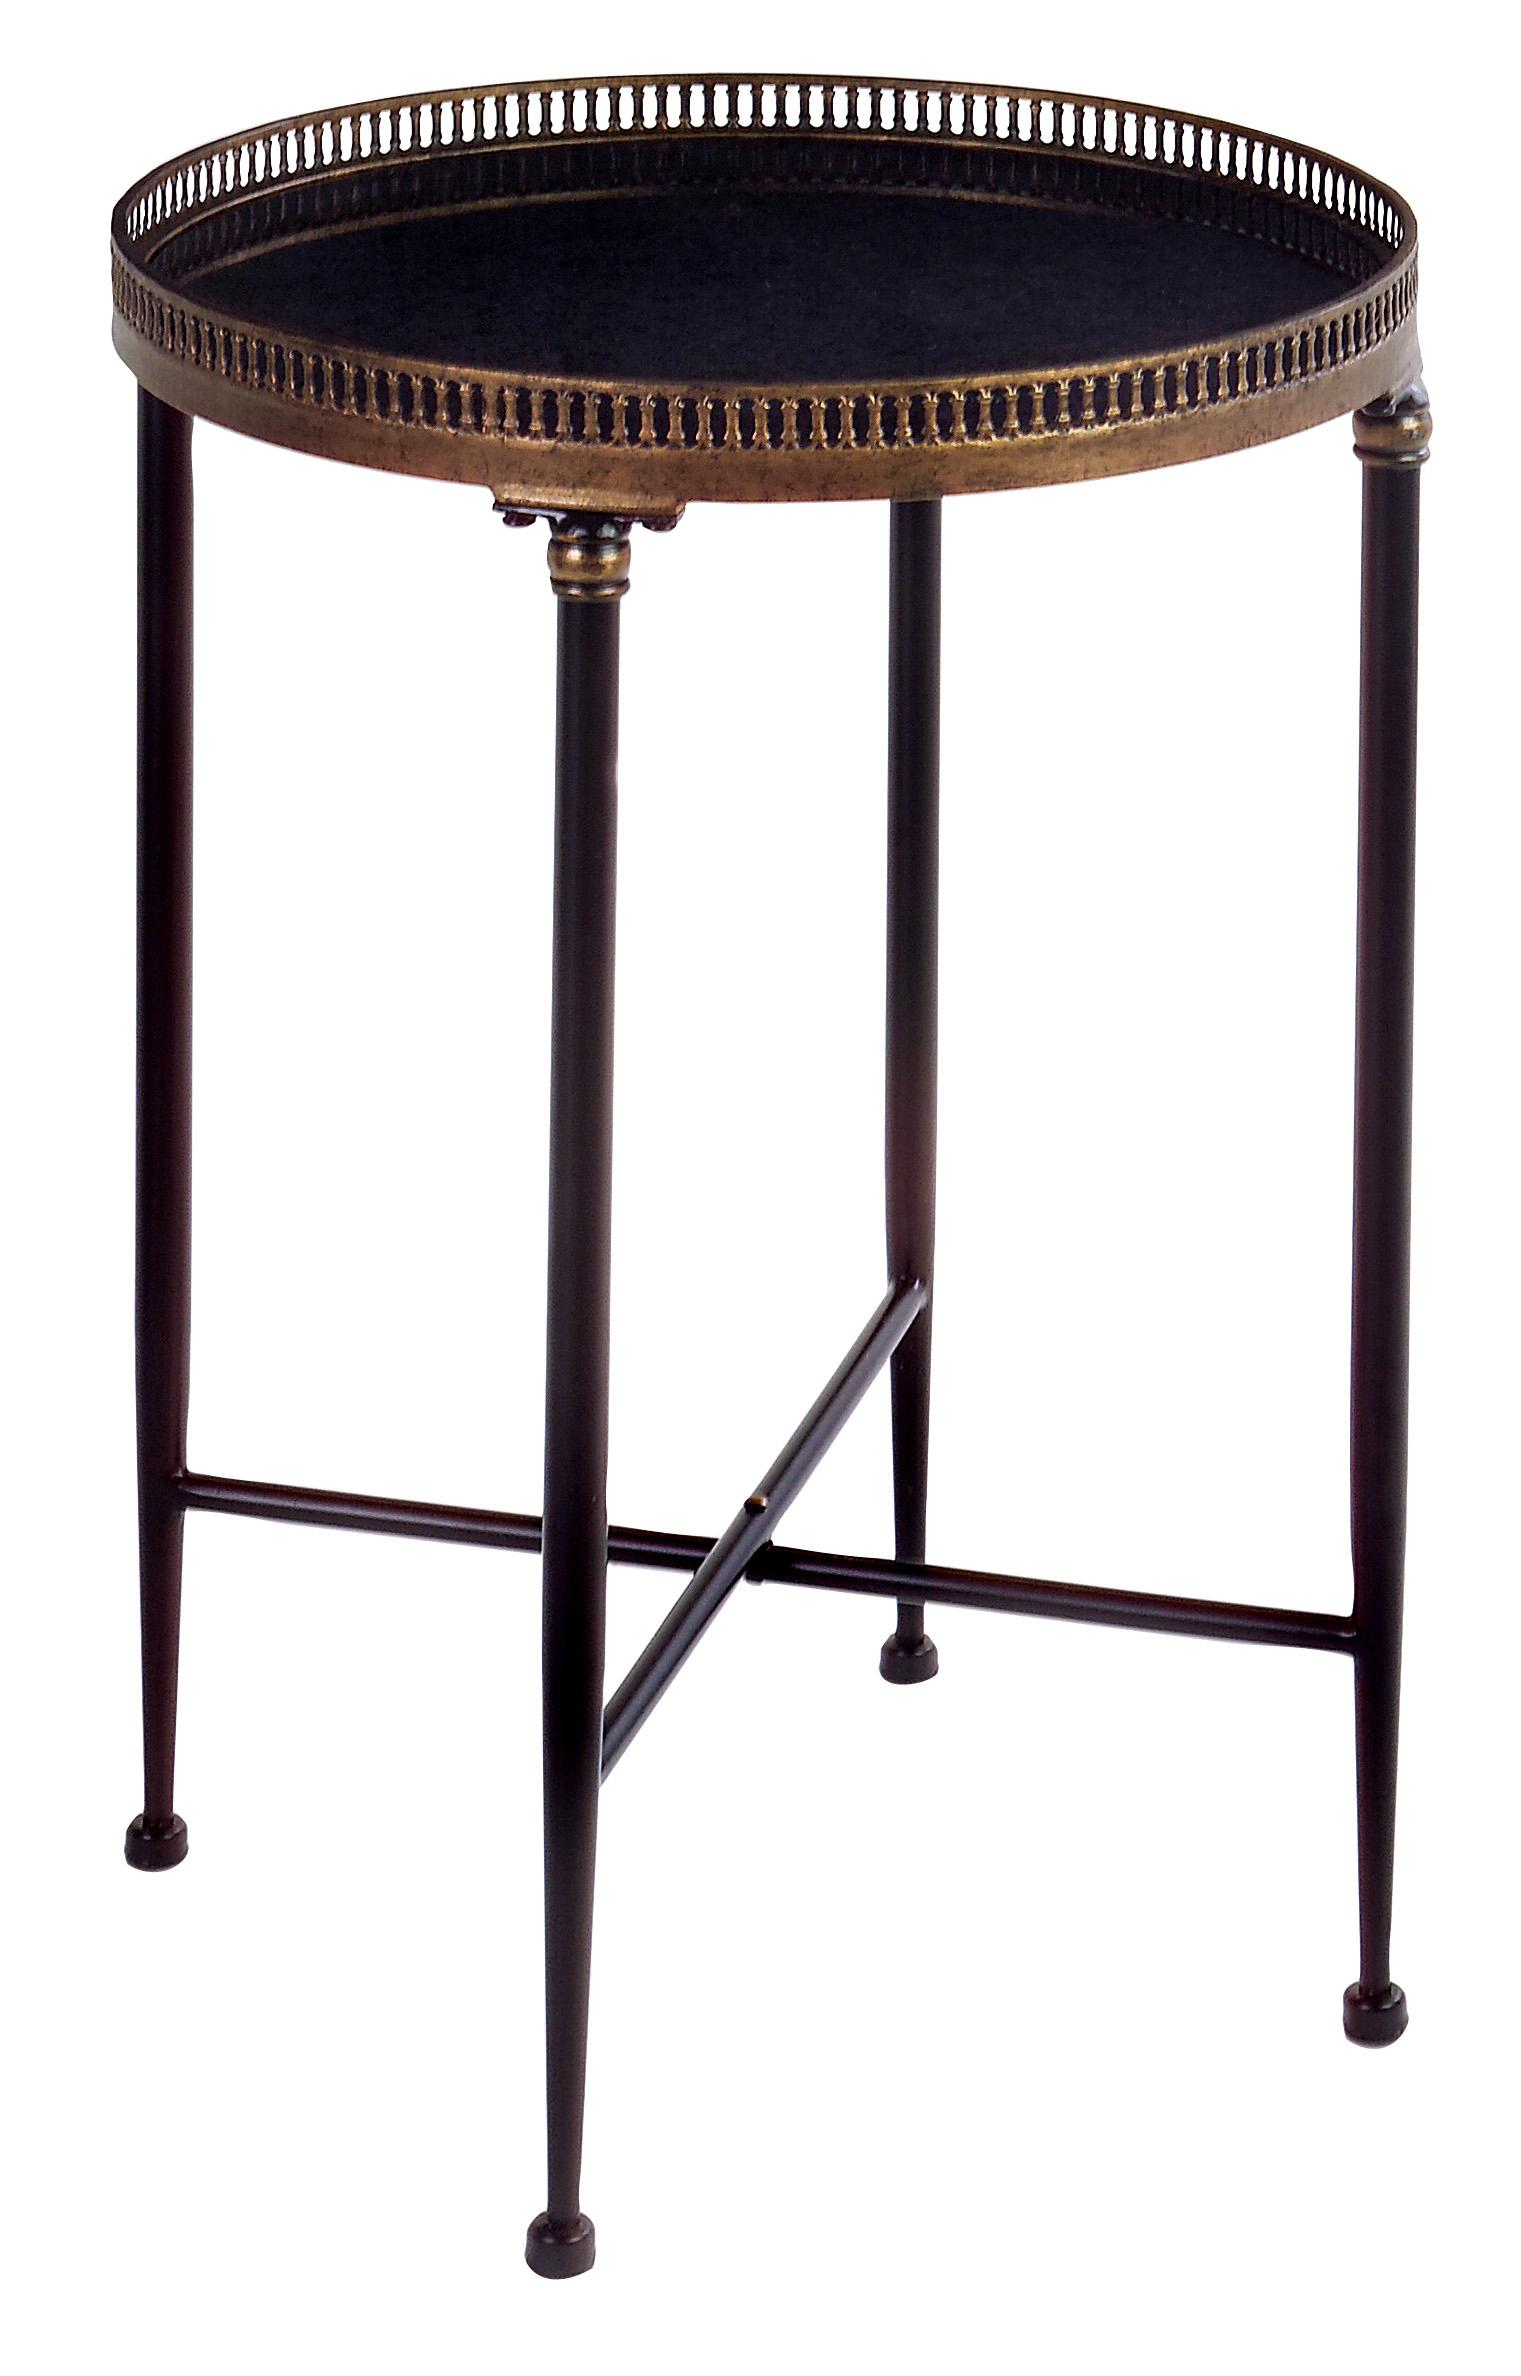 round black accent table ojcommerce end with drawer half occasional tables cool retro bath and beyond futon for hallway super thin console rattan dining chairs rose tiffany lamp